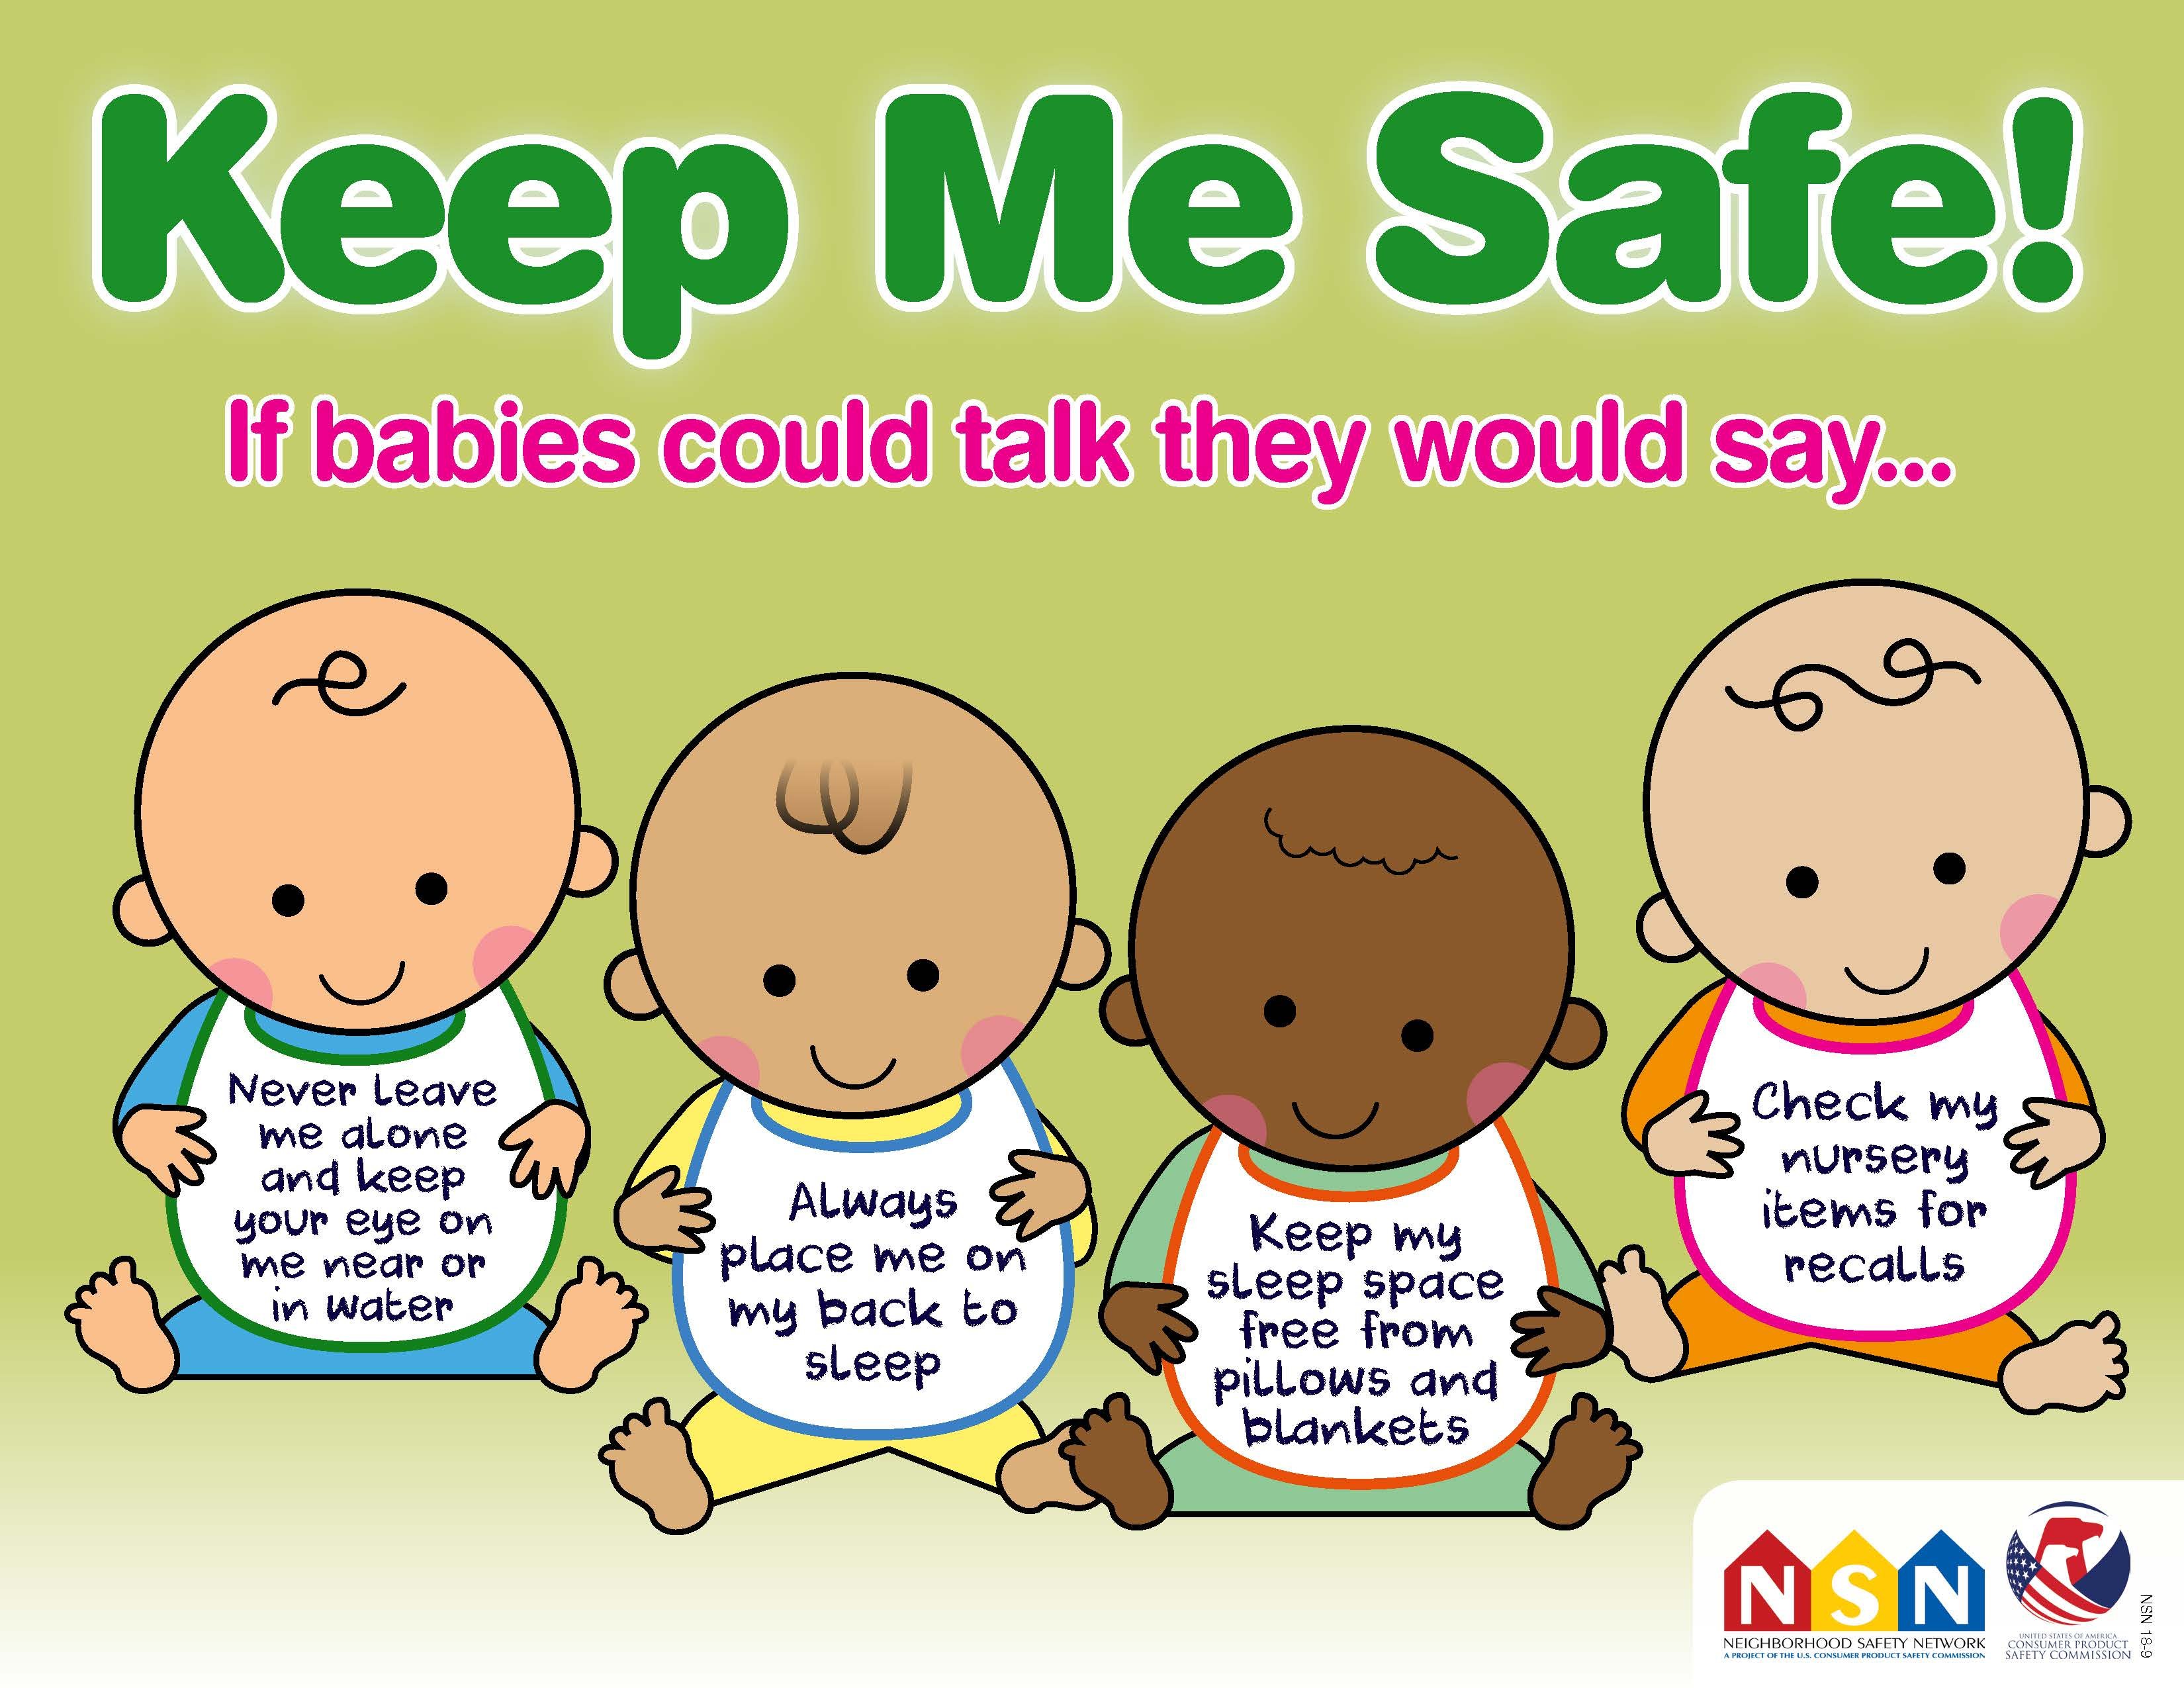 free sles for kids by mail no surveys keep me safe baby safety month 2018 cpsc gov 6486